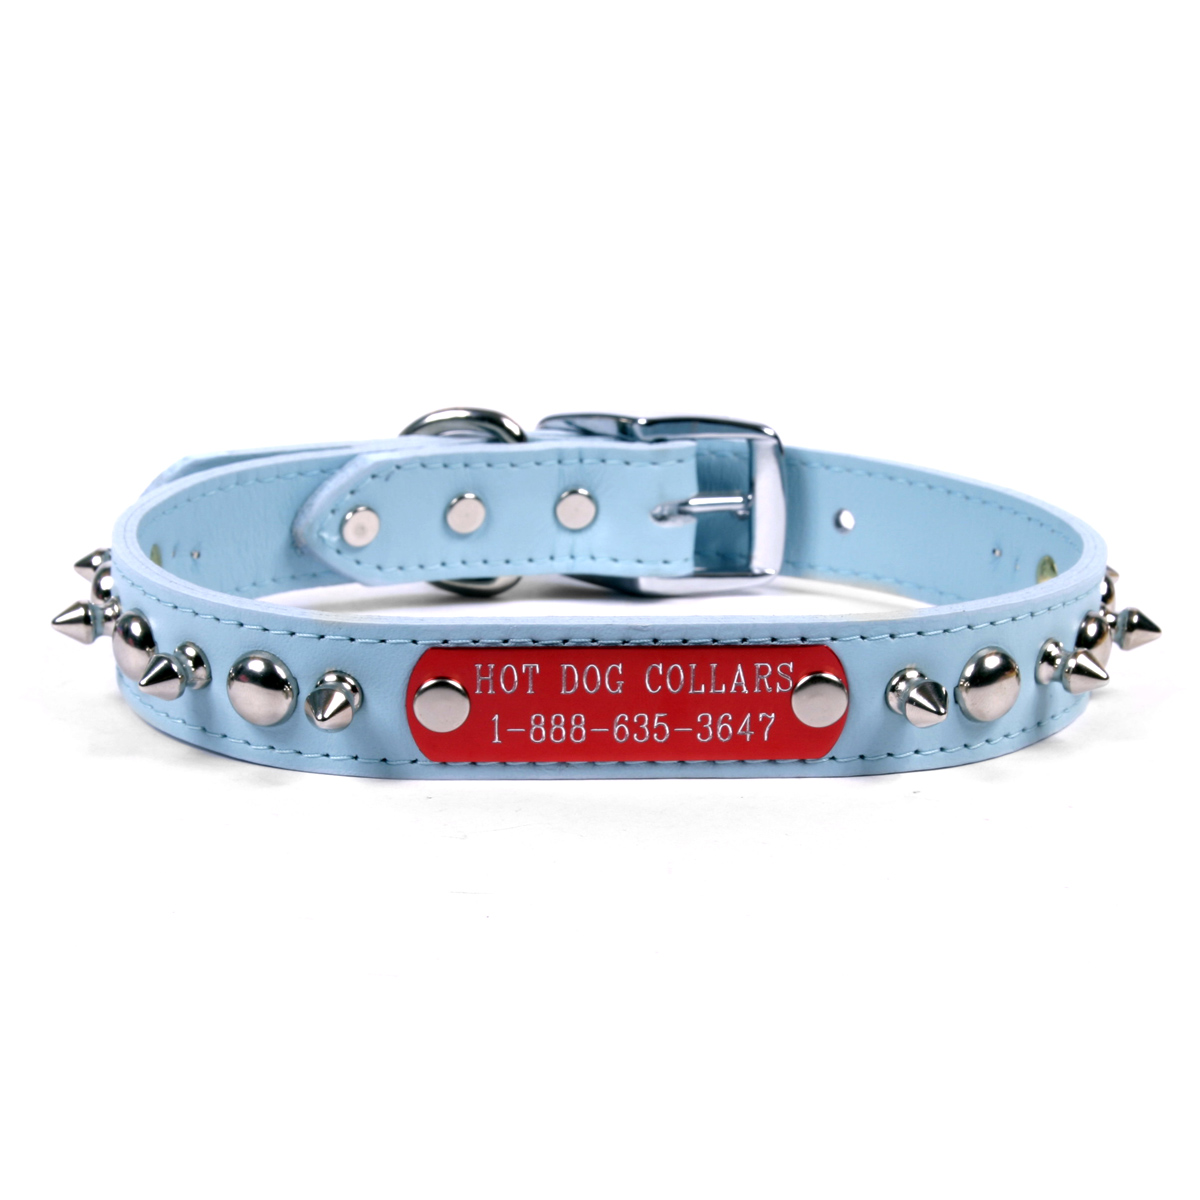 Hot Dog Spiked and Studded Leather Personalized Name Plat...